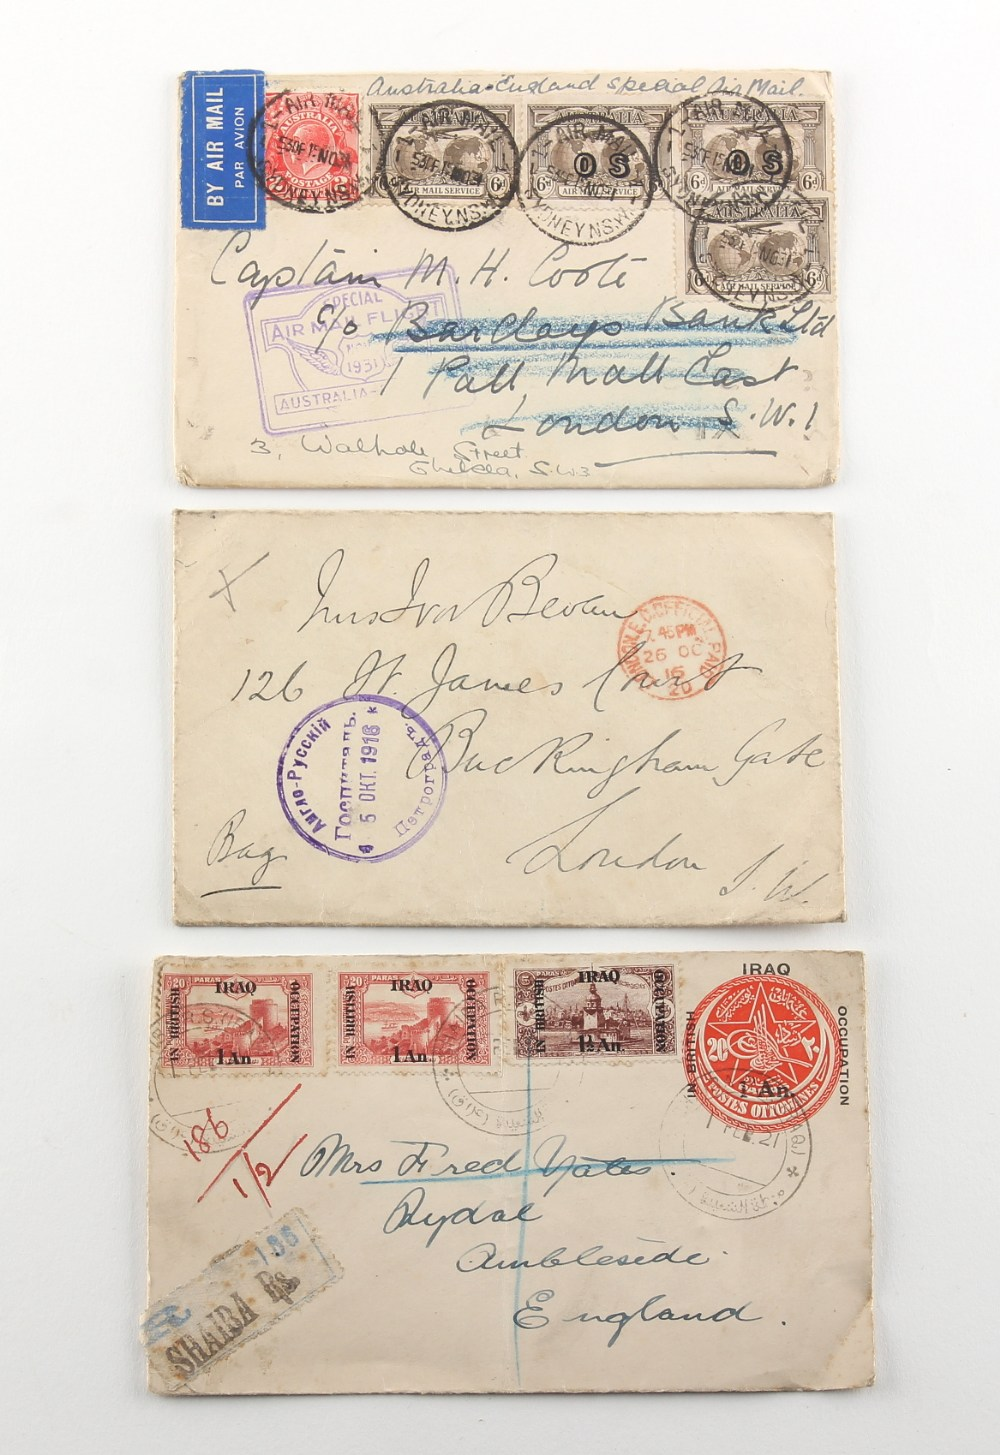 Stamps - World - Postal History: A box with many airmail and censored covers including Iraq in